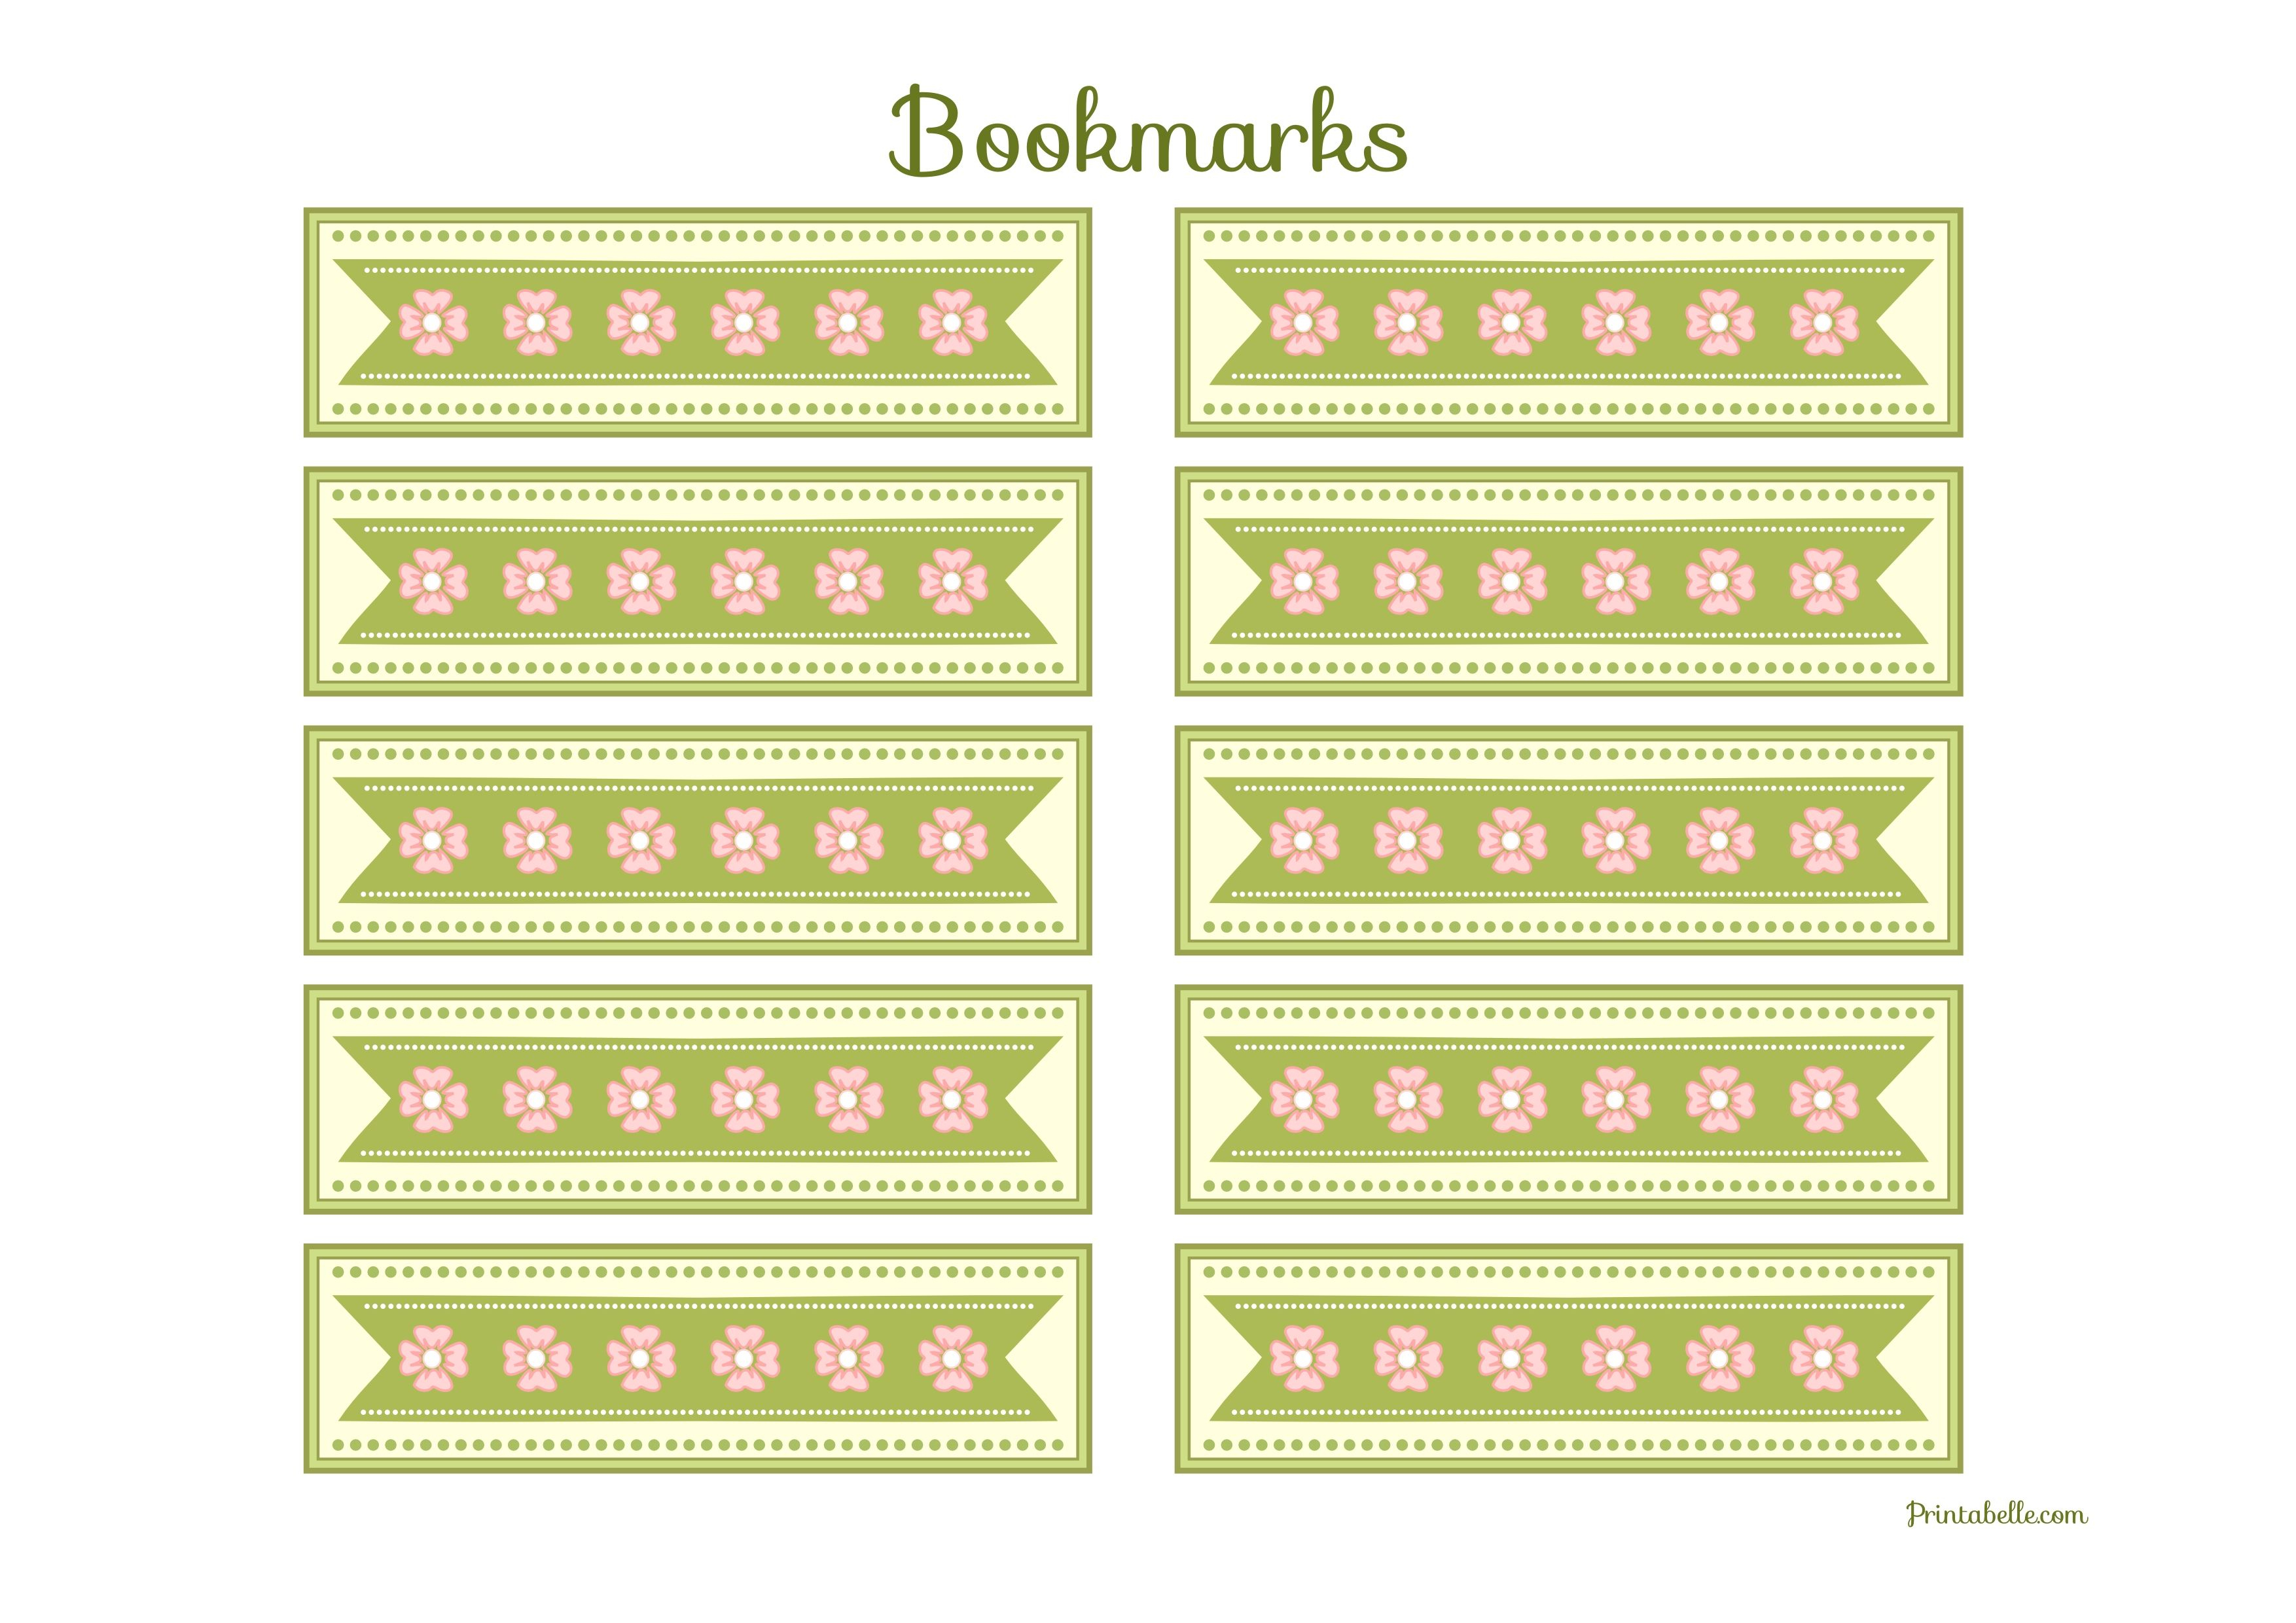 Free Vintage Baby Shower Printables From Printabelle | Vintage Baby - Free Printable Baby Bookmarks